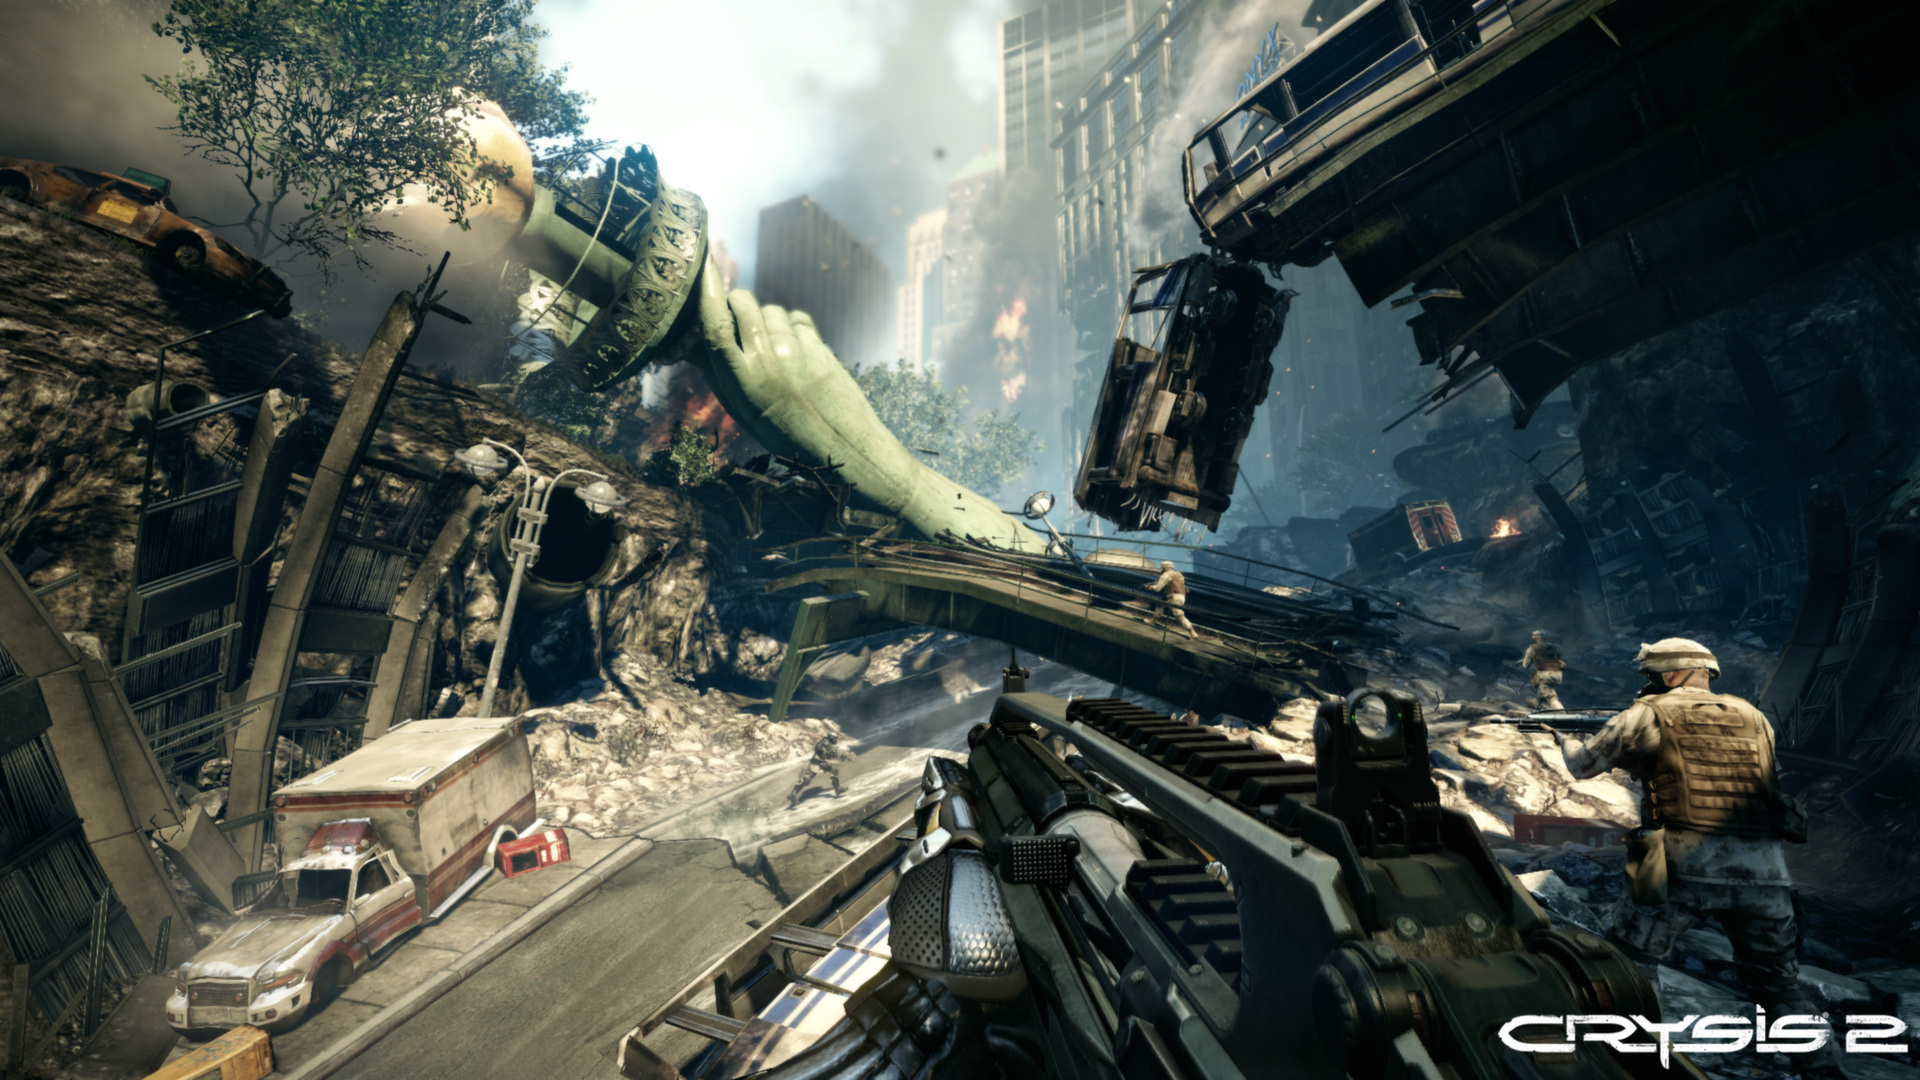 Crysis 2 pc game size free online games mario star catcher 2